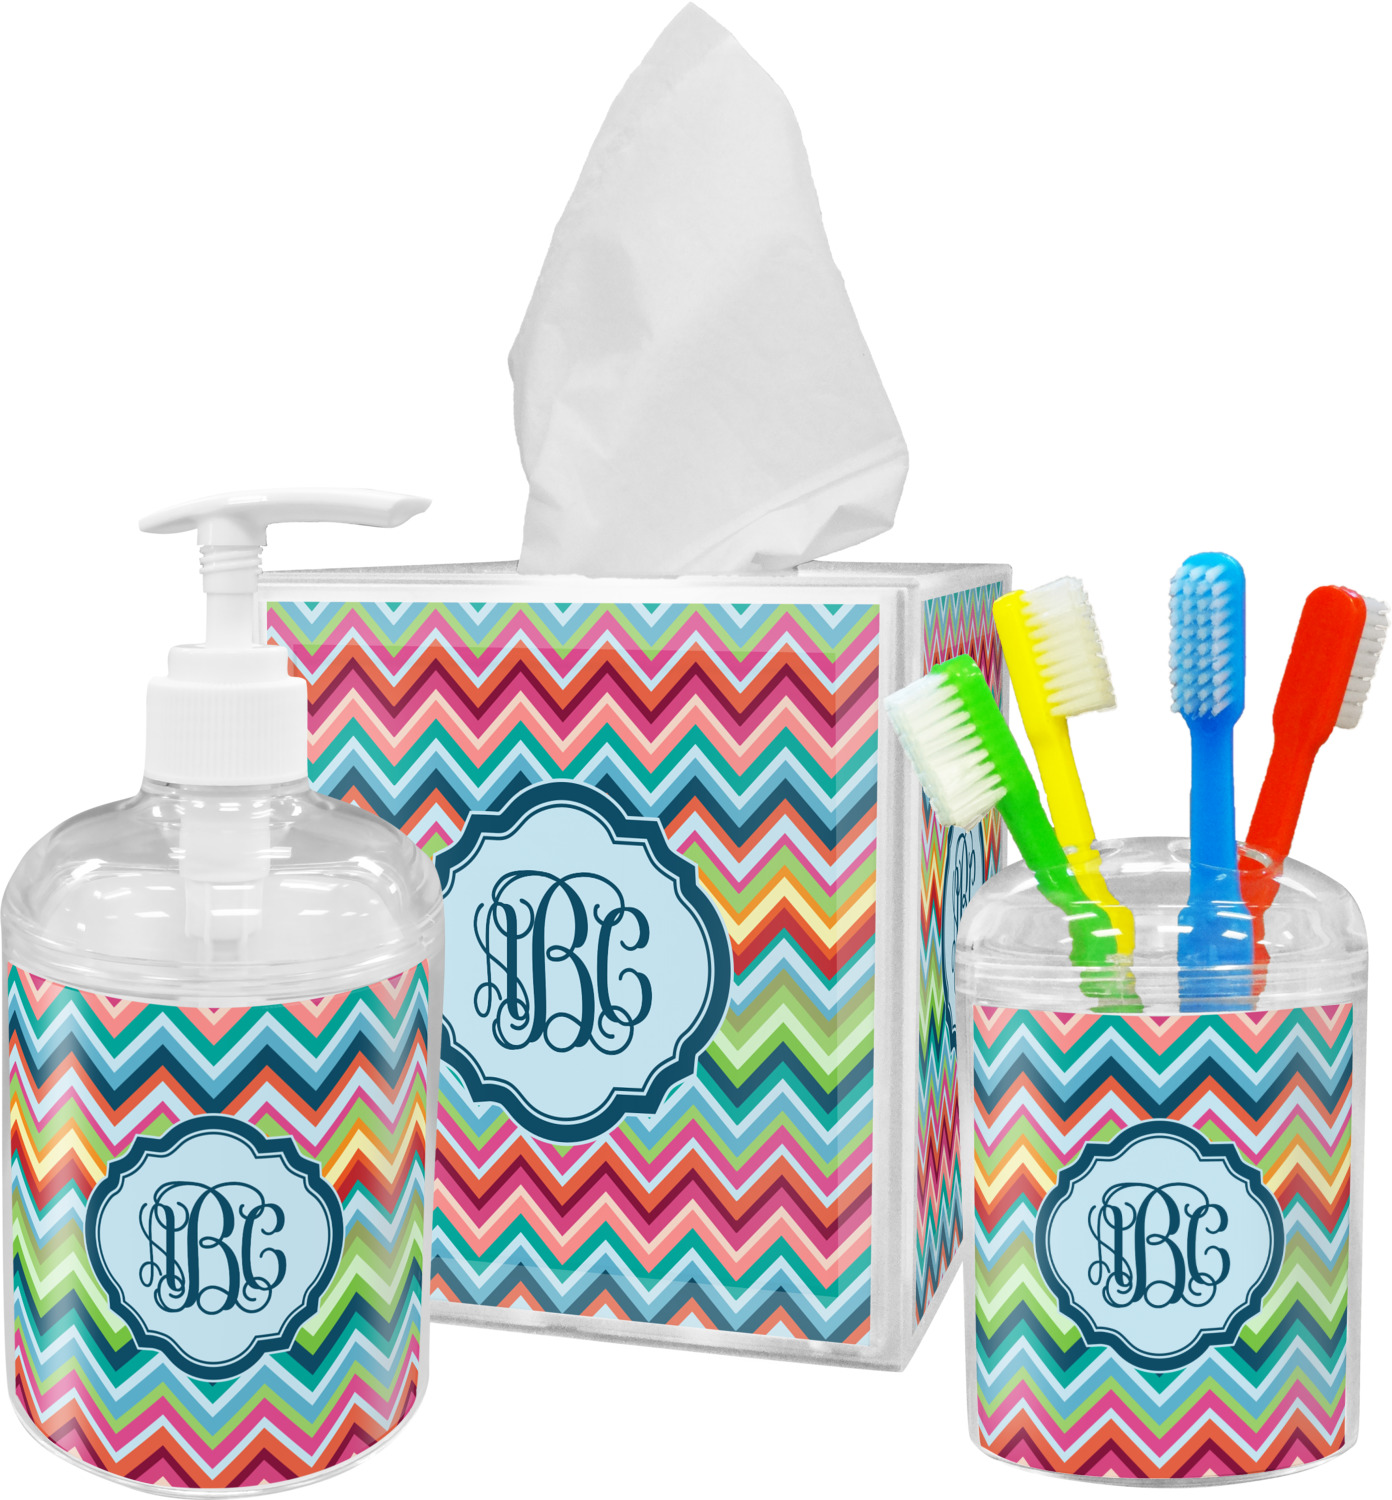 Chevron Monogram Bathroom Accessories